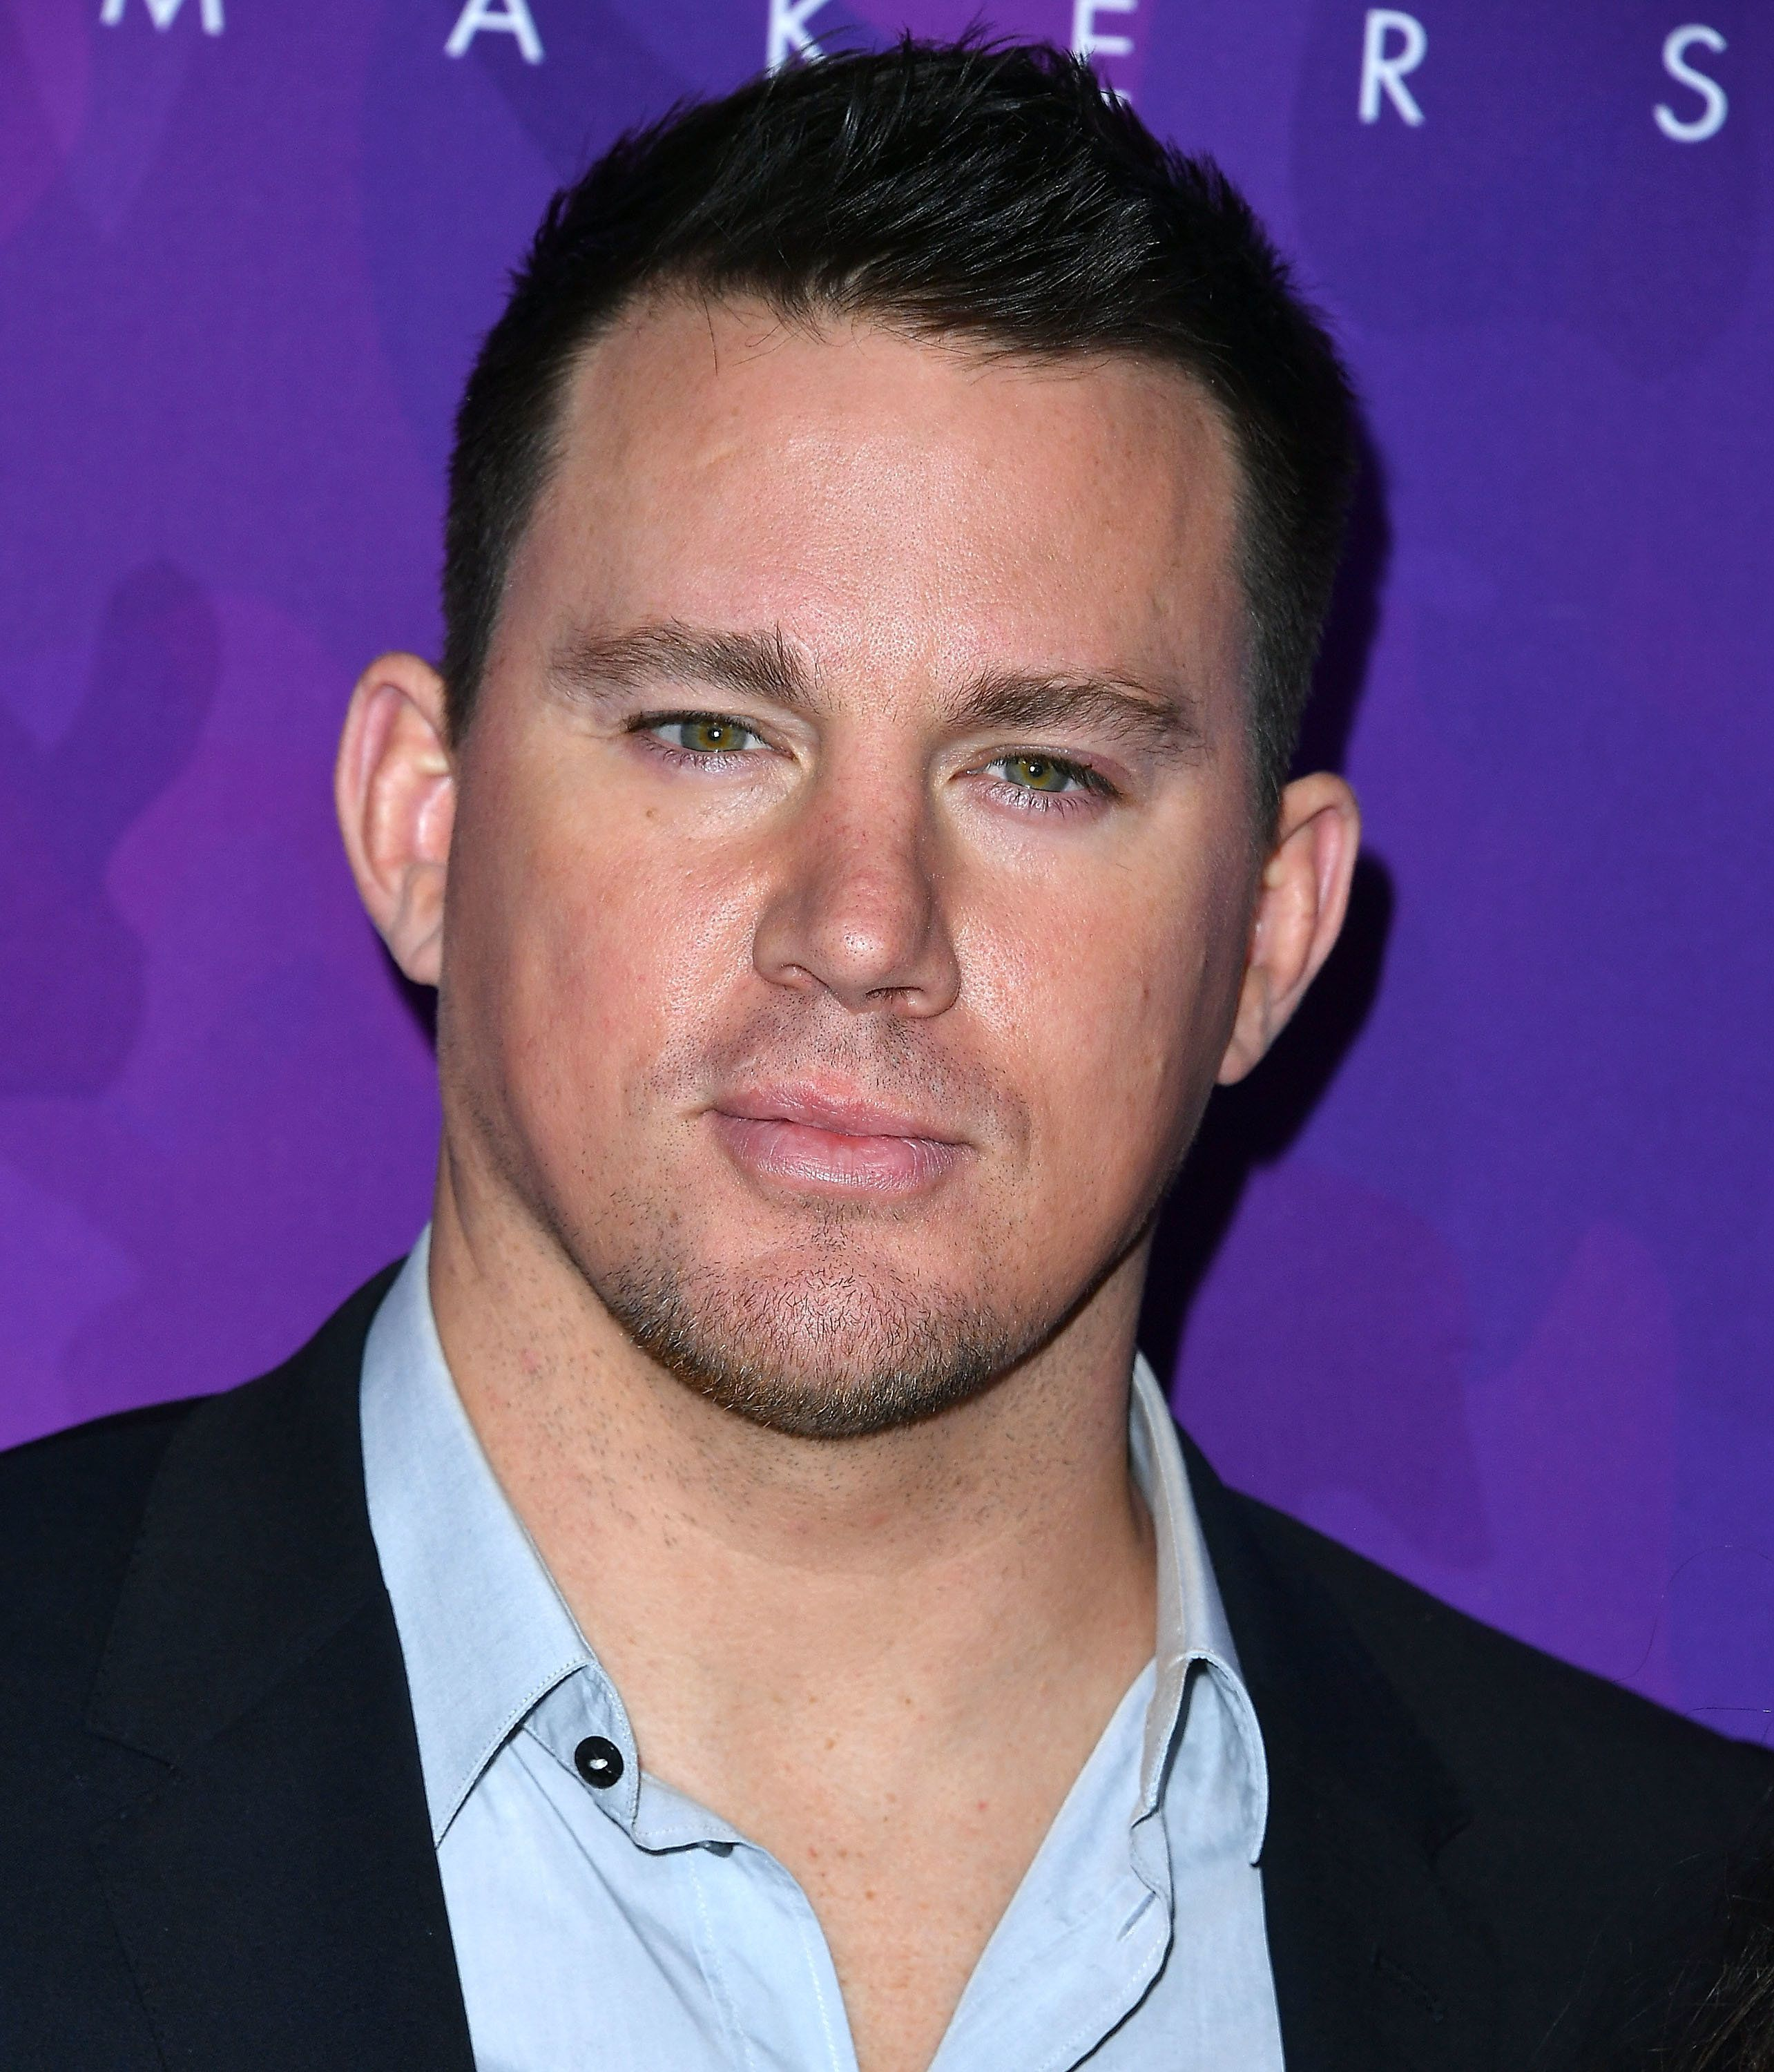 WEST HOLLYWOOD, CA - NOVEMBER 17:  Channing Tatum arrives at the Variety And WWD Host 2nd Annual StyleMakers Awards at Quixote Studios West Hollywood on November 17, 2016 in West Hollywood, California.  (Photo by Steve Granitz/WireImage)